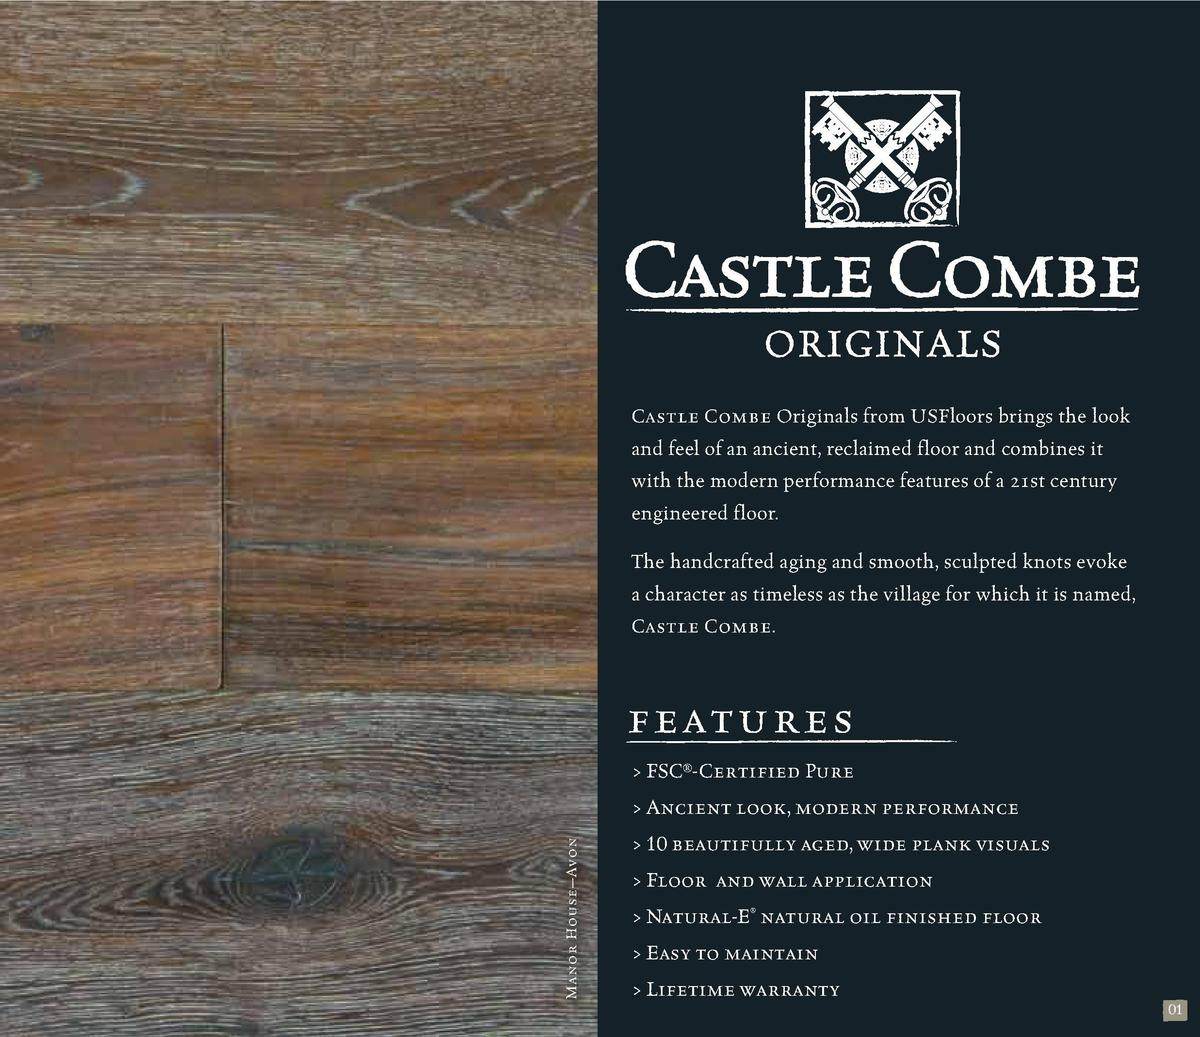 Castle Combe Originals from USFloors brings the look and feel of an ancient, reclaimed floor and combines it with the mode...